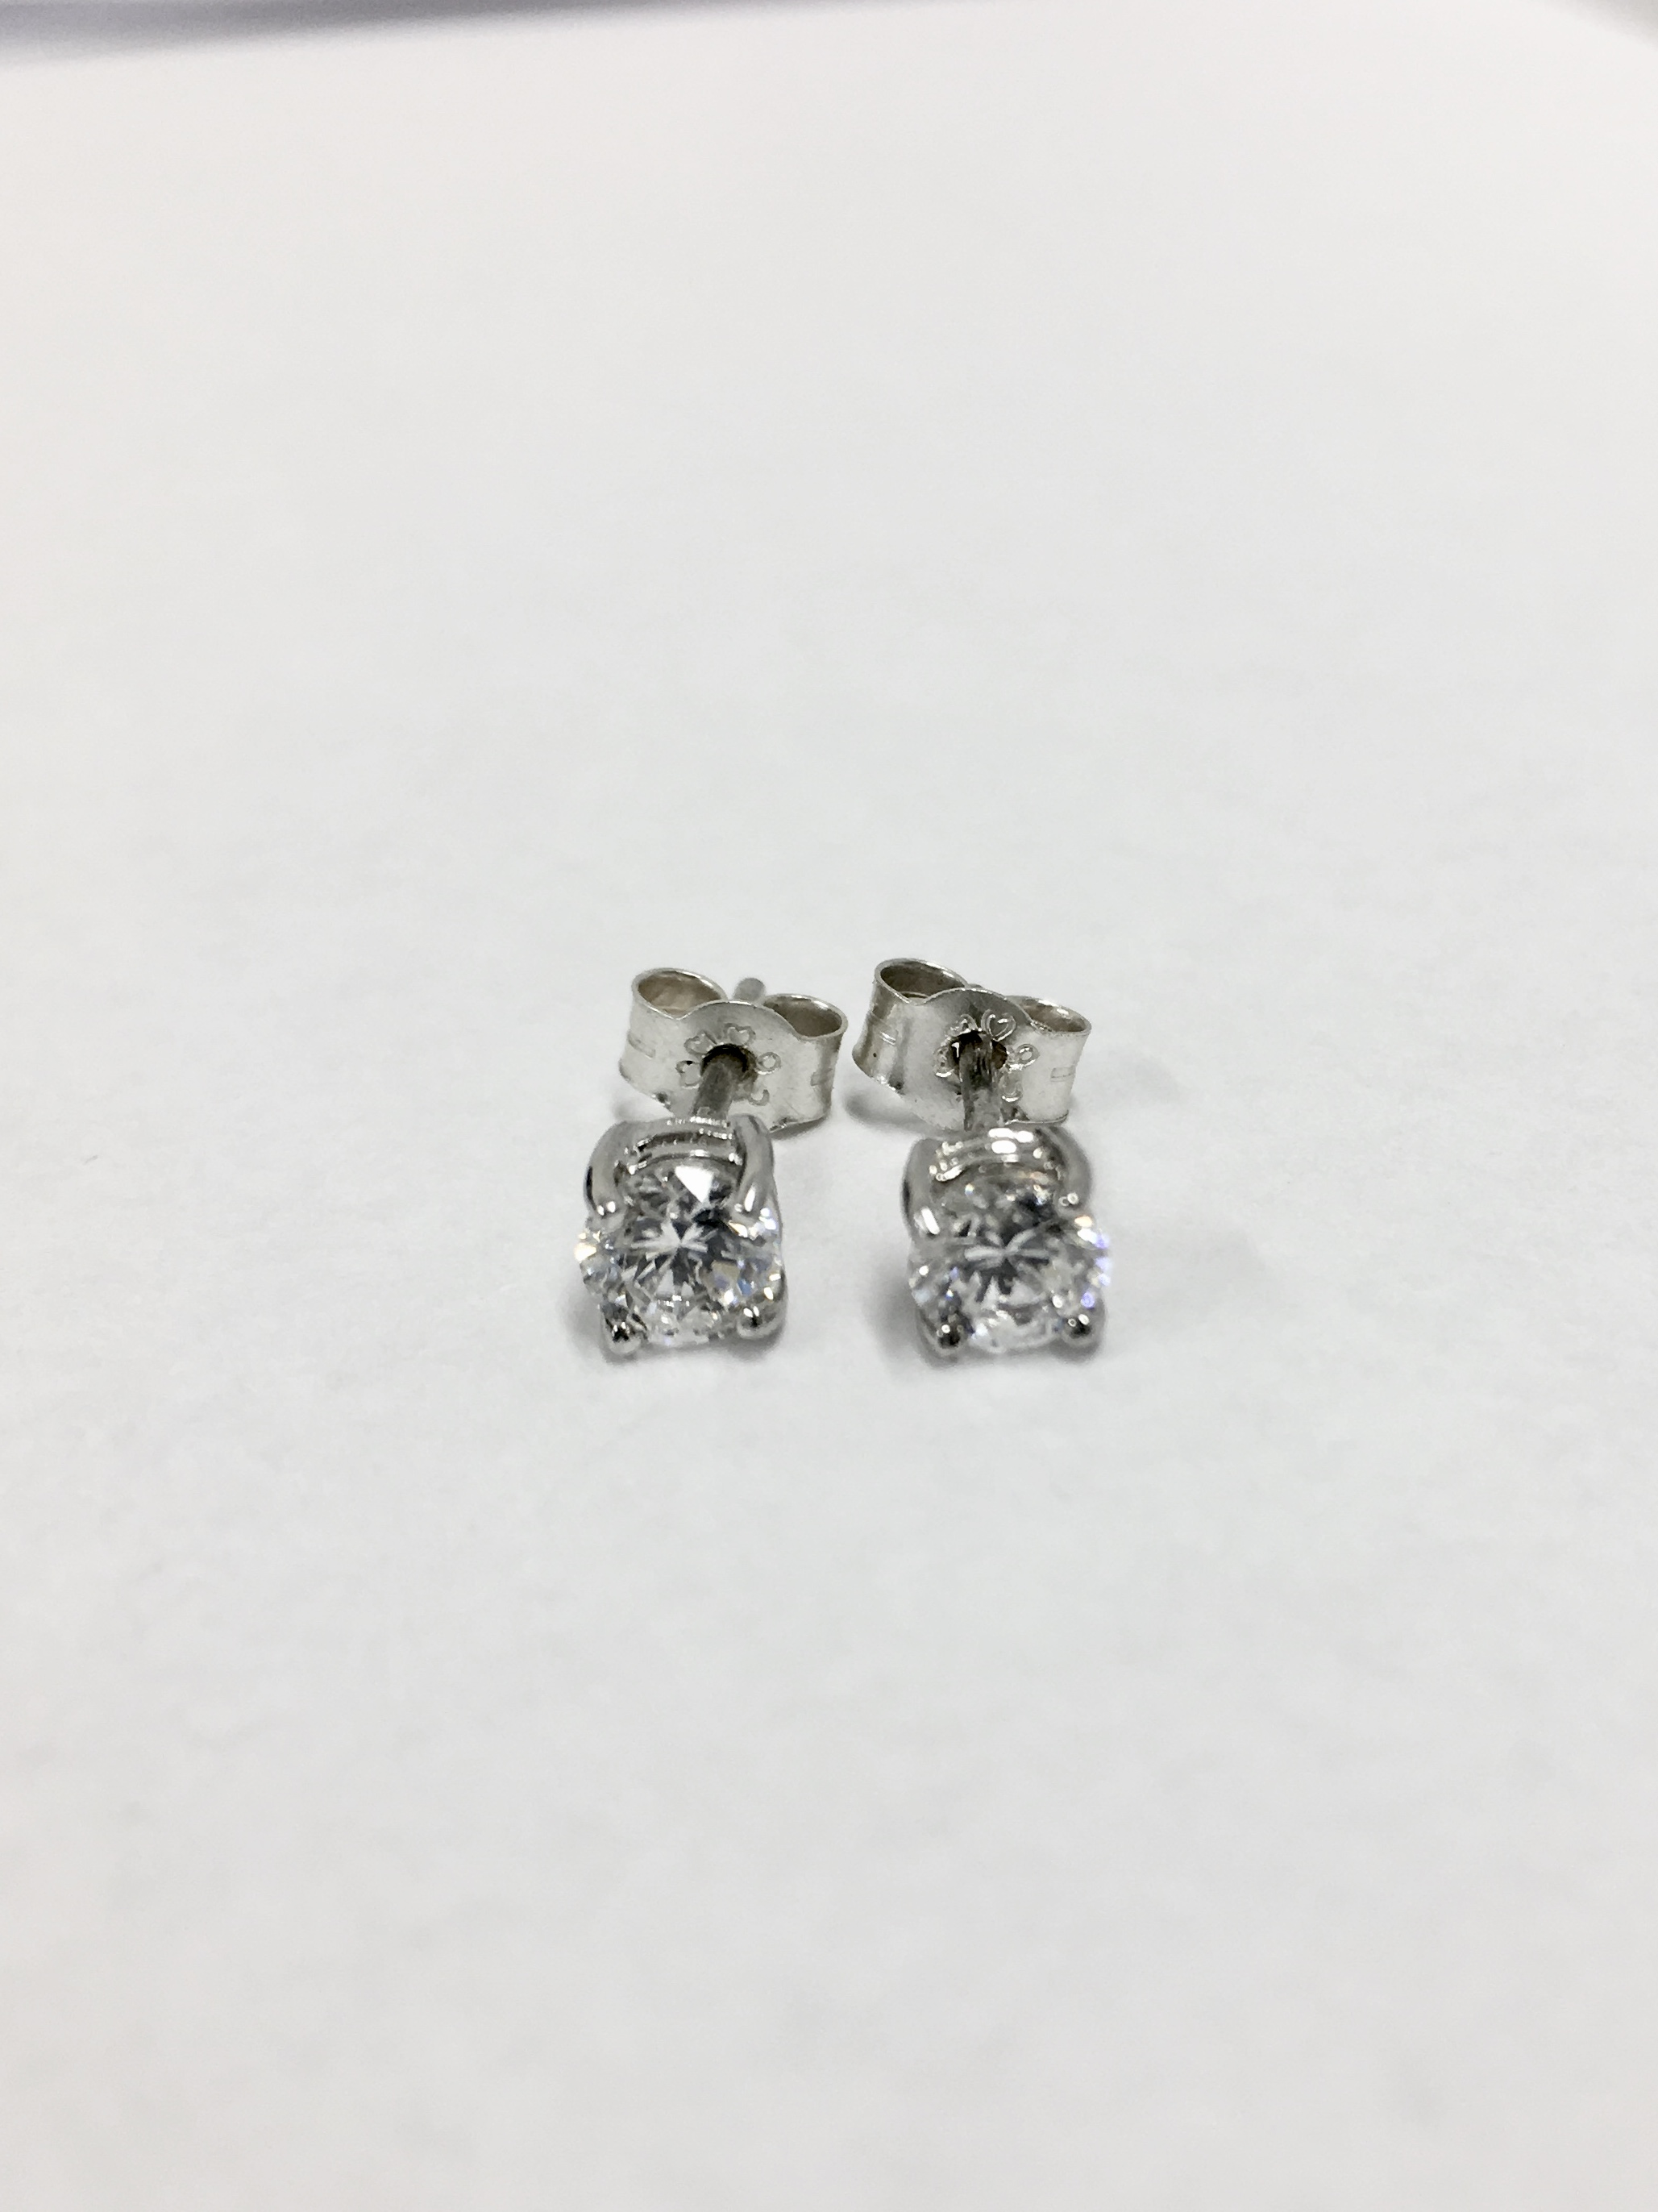 over aurora cut solitaire brilliantcut stud earrings diamond set rub gallery with brilliant ruboverset